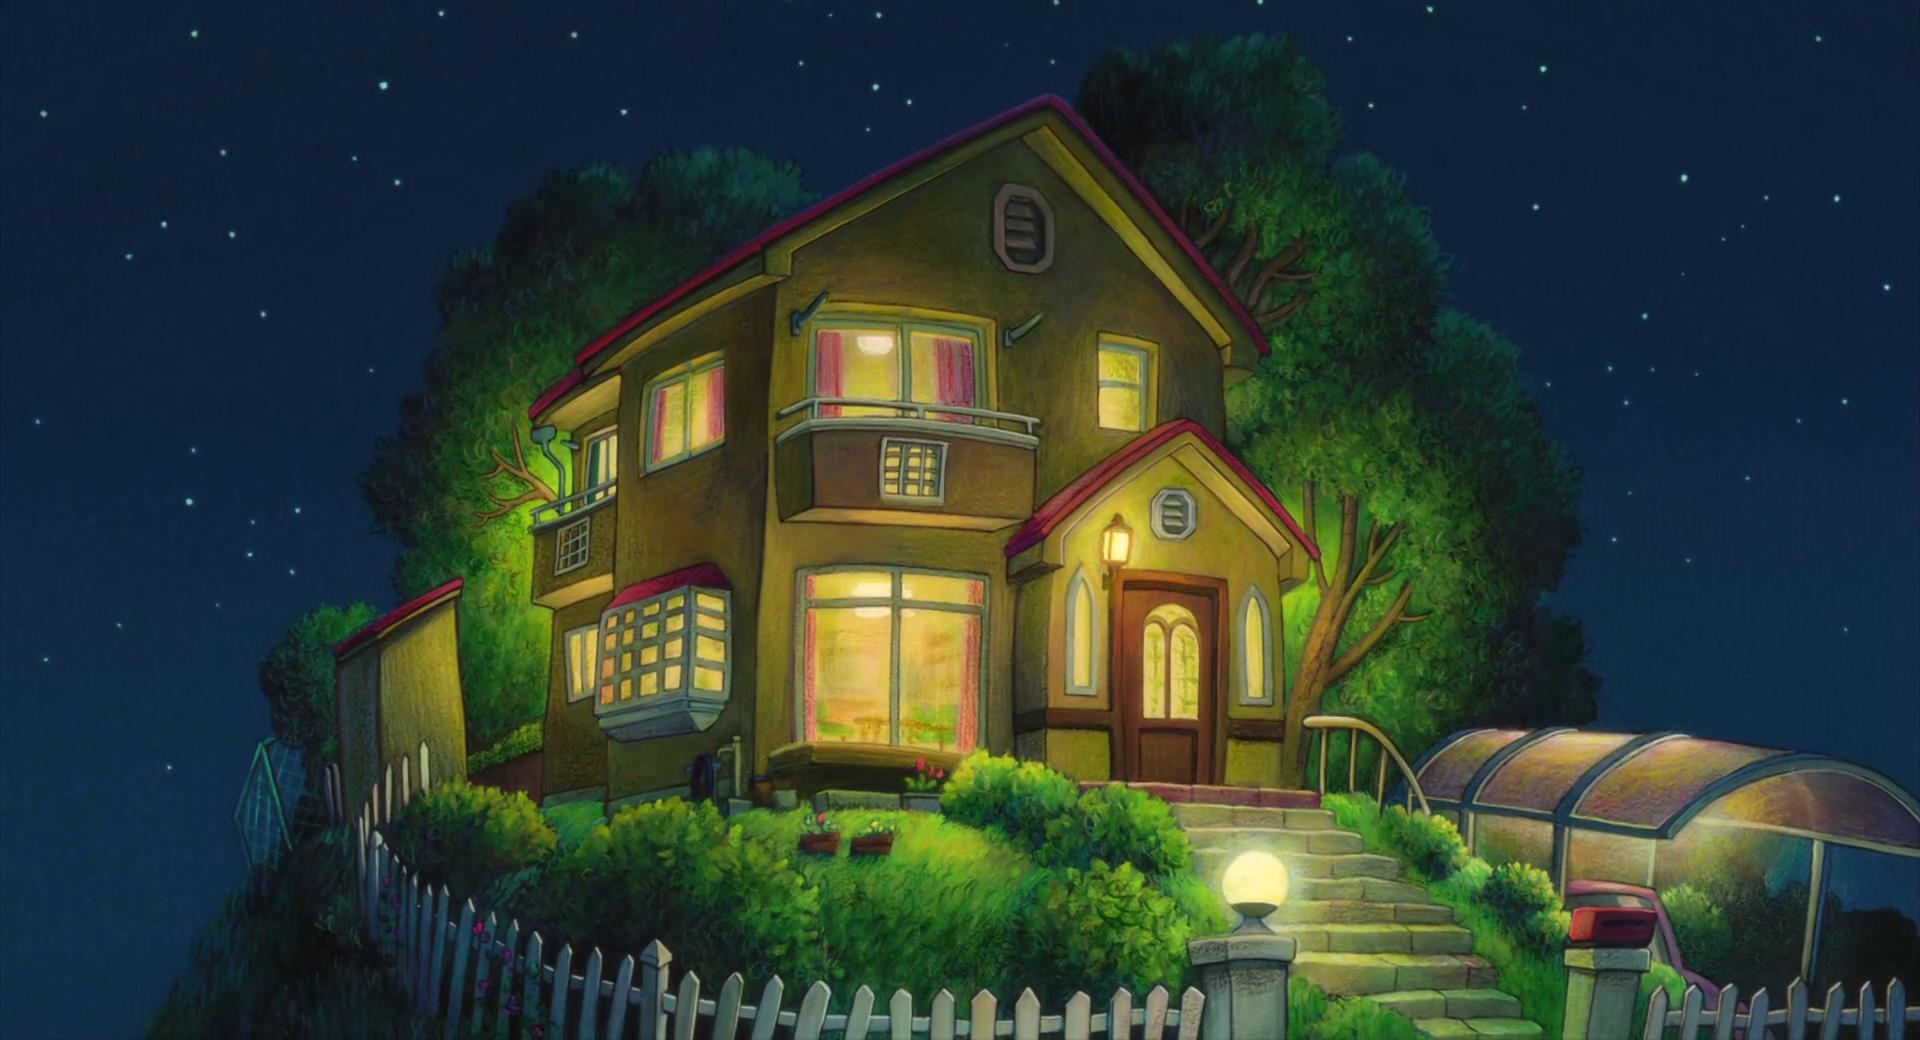 Howls Moving Castle Hd Wallpaper Wallpaper Wednesday More Ghibli Wallpapers For You